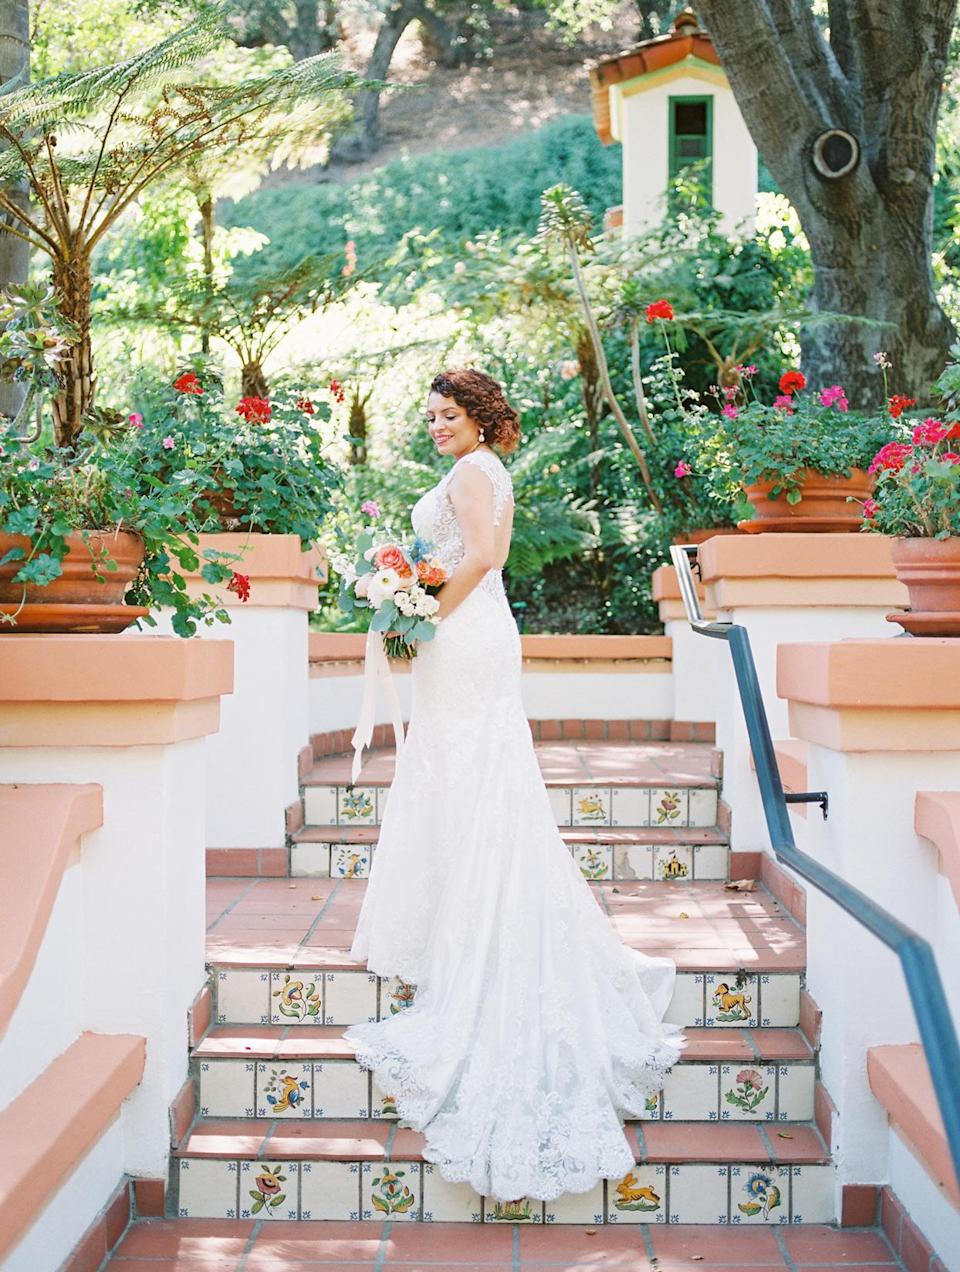 """<p>Ana knew her <a href=""""https://eddyk.com/"""" rel=""""nofollow noopener"""" target=""""_blank"""" data-ylk=""""slk:Eddy K. Europe"""" class=""""link rapid-noclick-resp"""">Eddy K. Europe</a> wedding dress was the one when stepped into it at a bridal atelier and realized she never wanted to take it off. The sleeveless fit-and-flare gown was complete with an illusion neckline, keyhole back, and lace appliqués.</p>"""